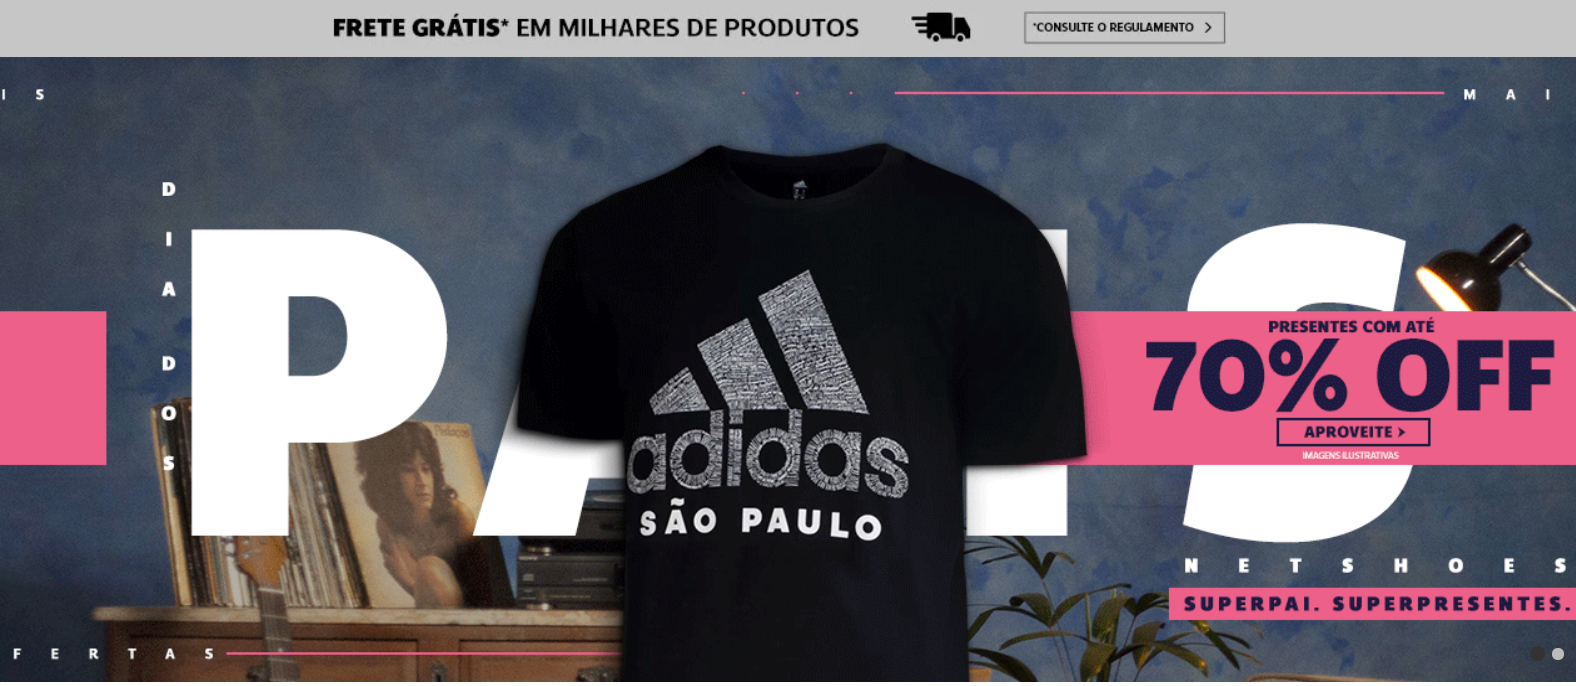 top e-commerce sites in Brazil netshoes